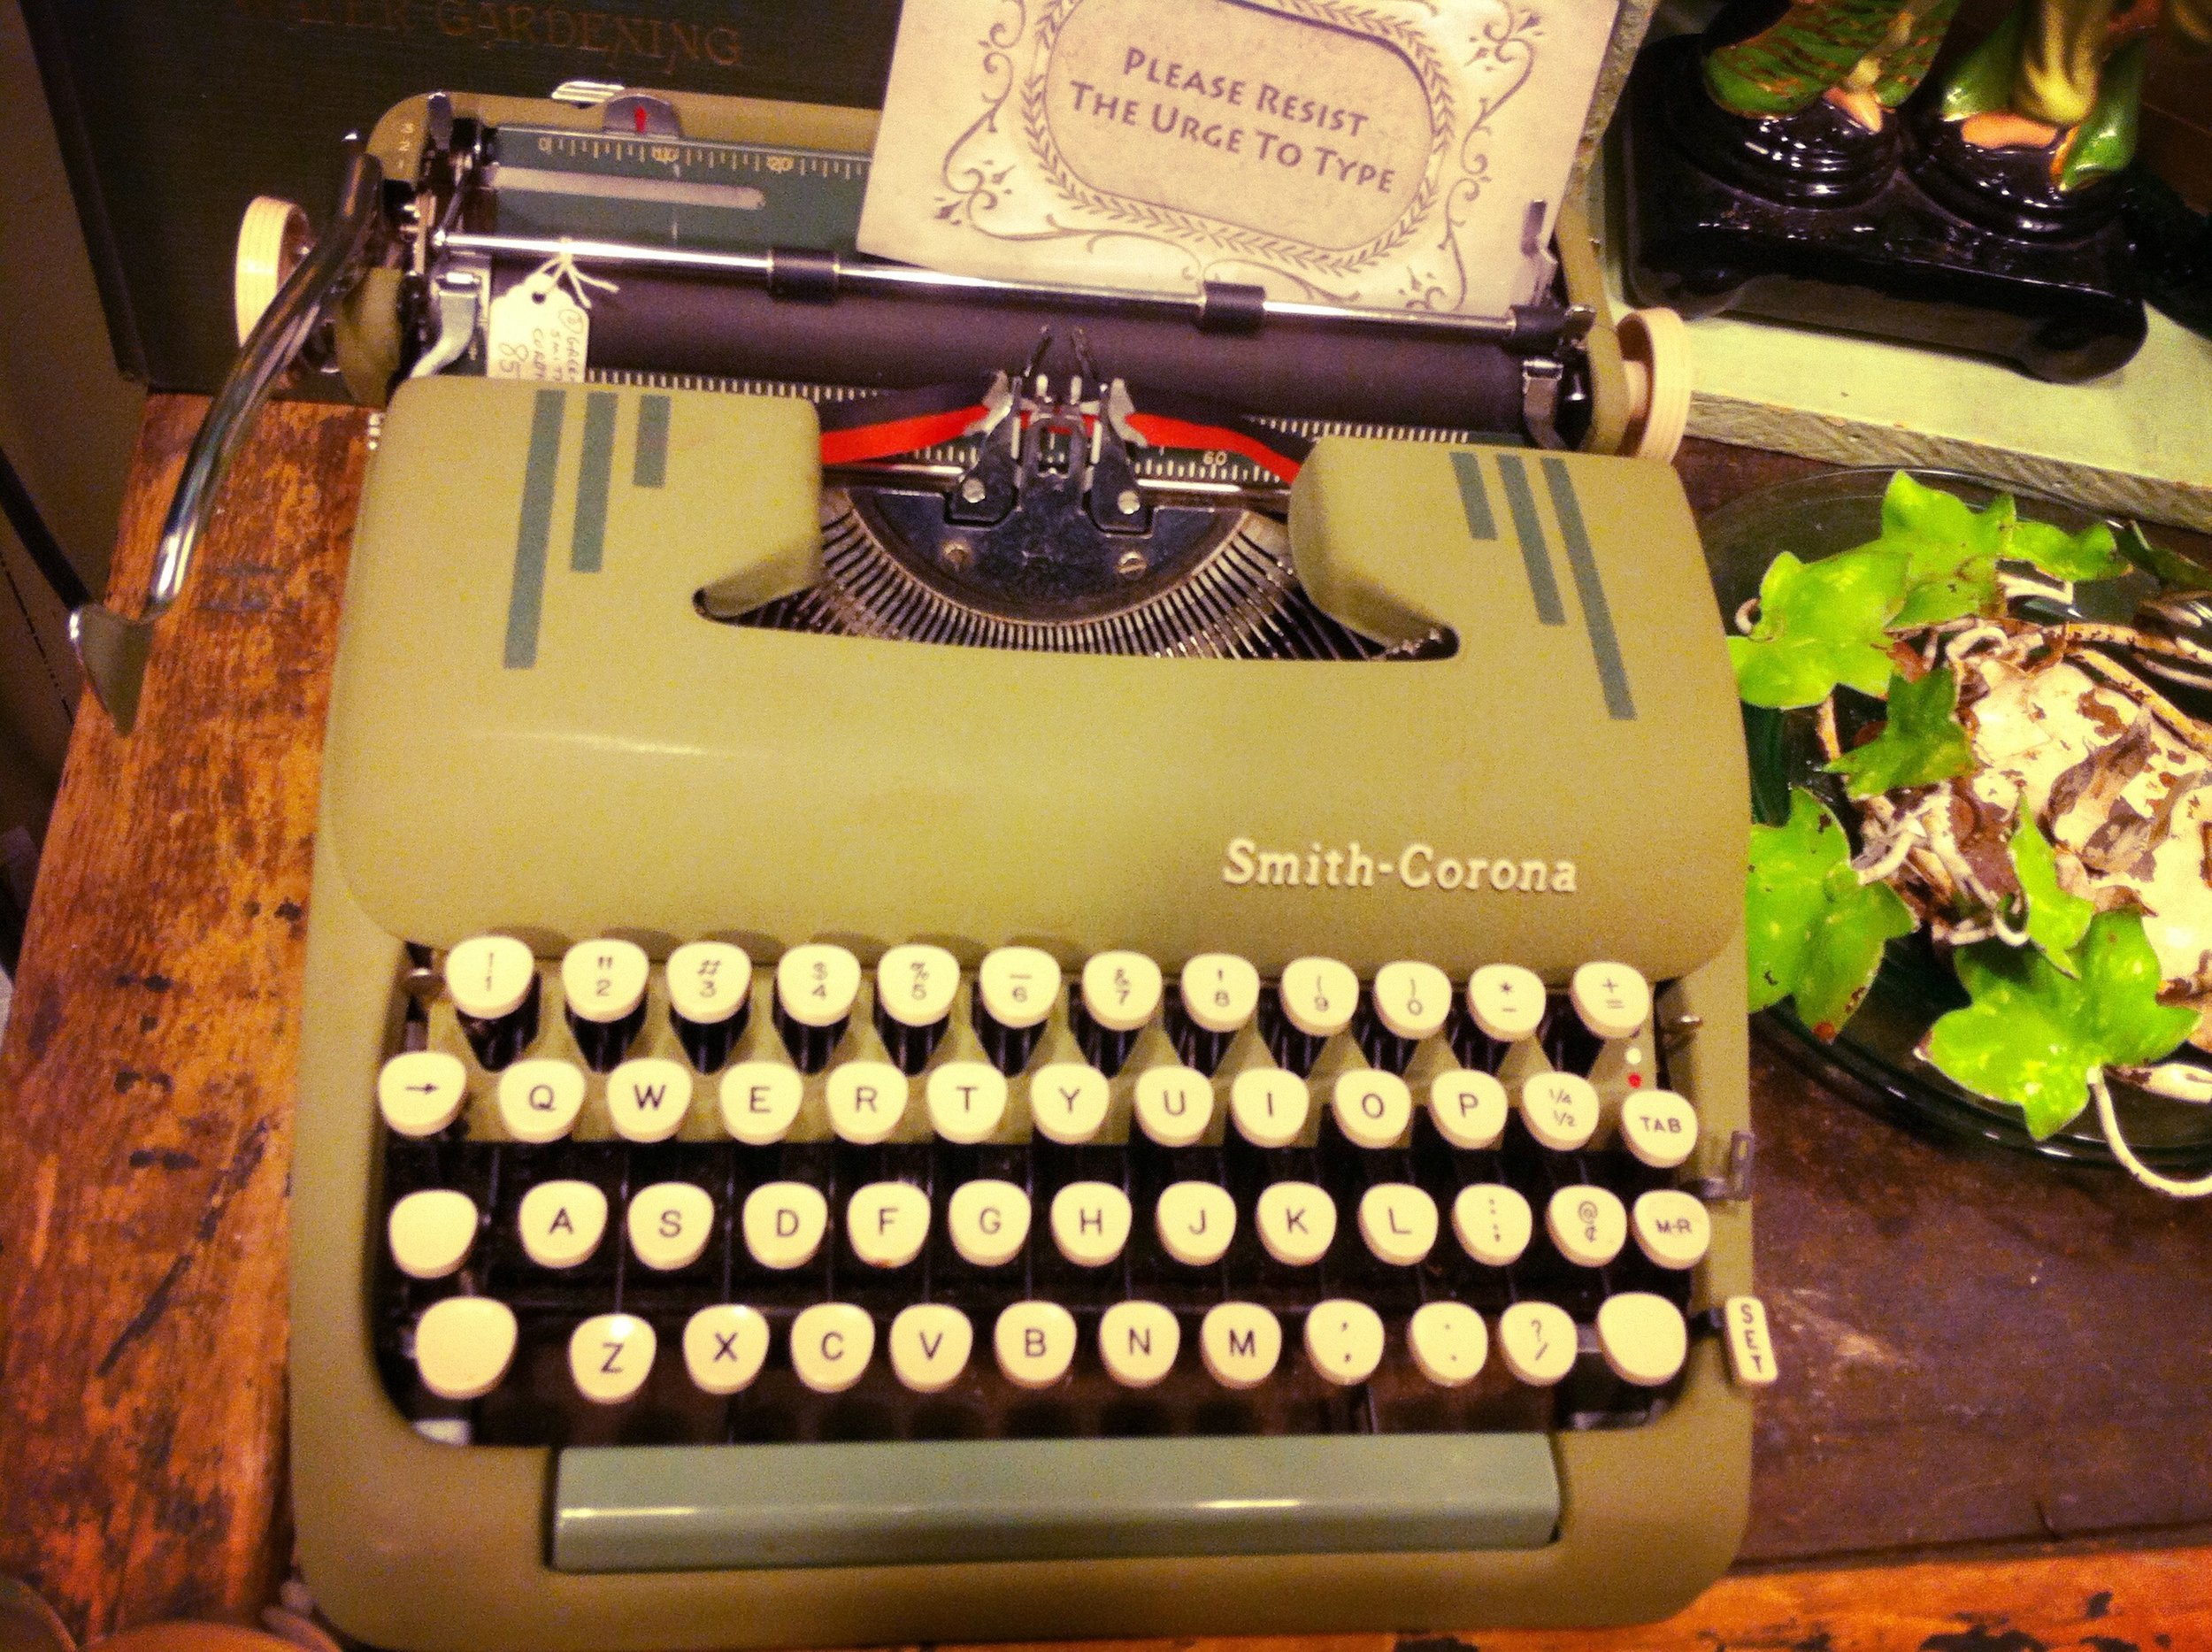 Lusting after this typewriter...